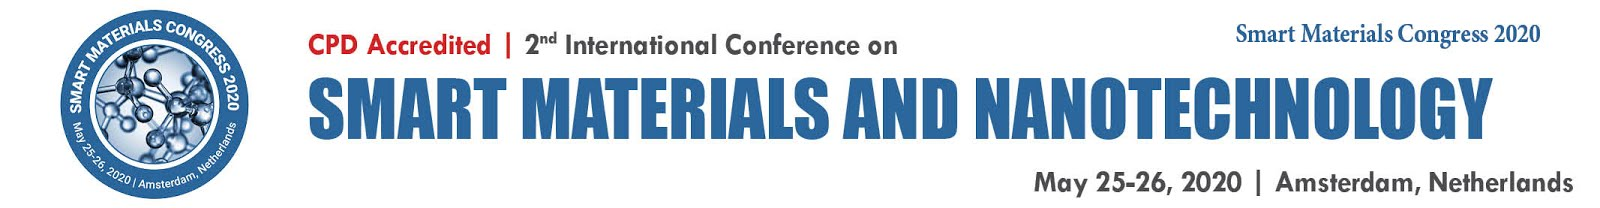 International Conference on Smart Materials and Nanotechnology